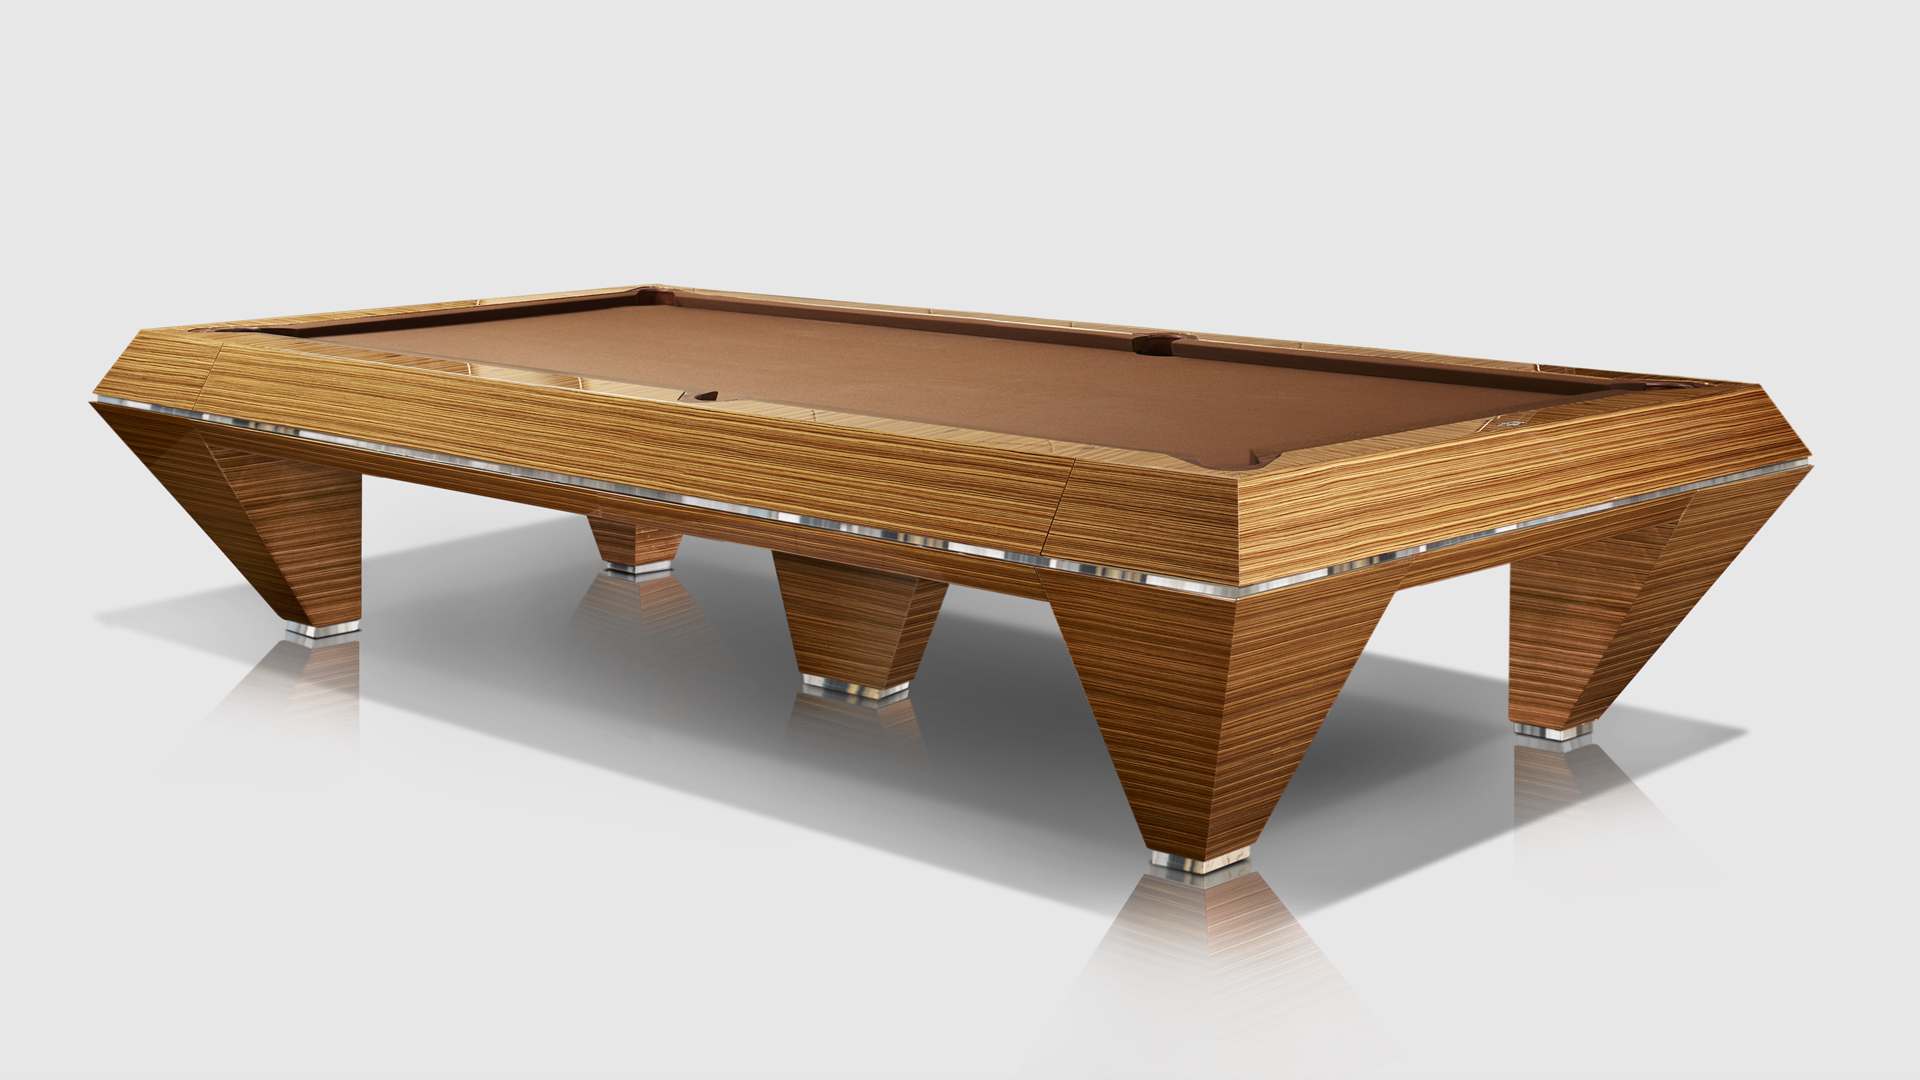 Millennium Precious Woods Ebony Makassar/Zebrano 5 bases Billiard Pool Table 2